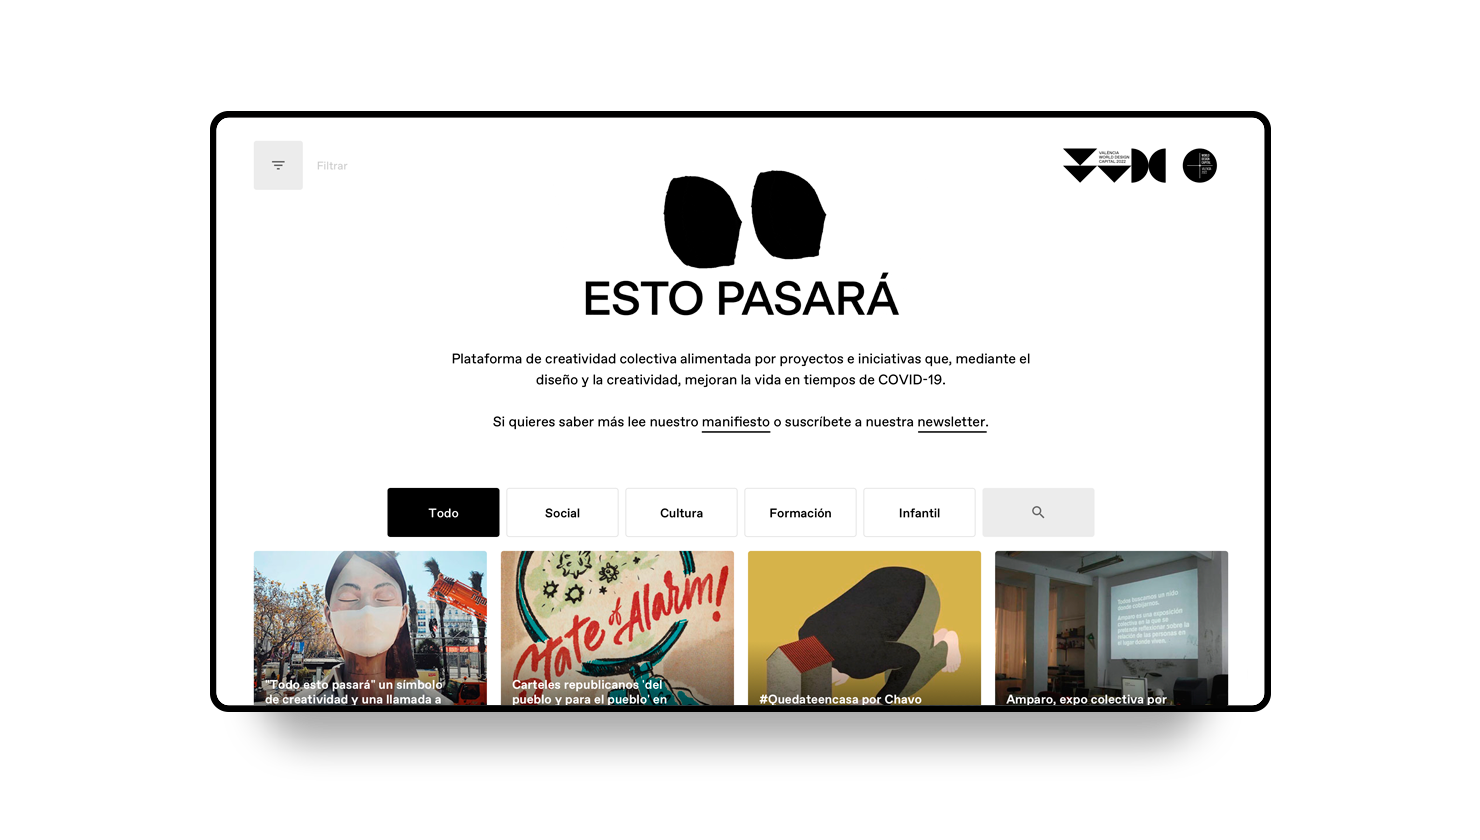 Esto pasará, a collective platform for design and creativity to combat Covid19